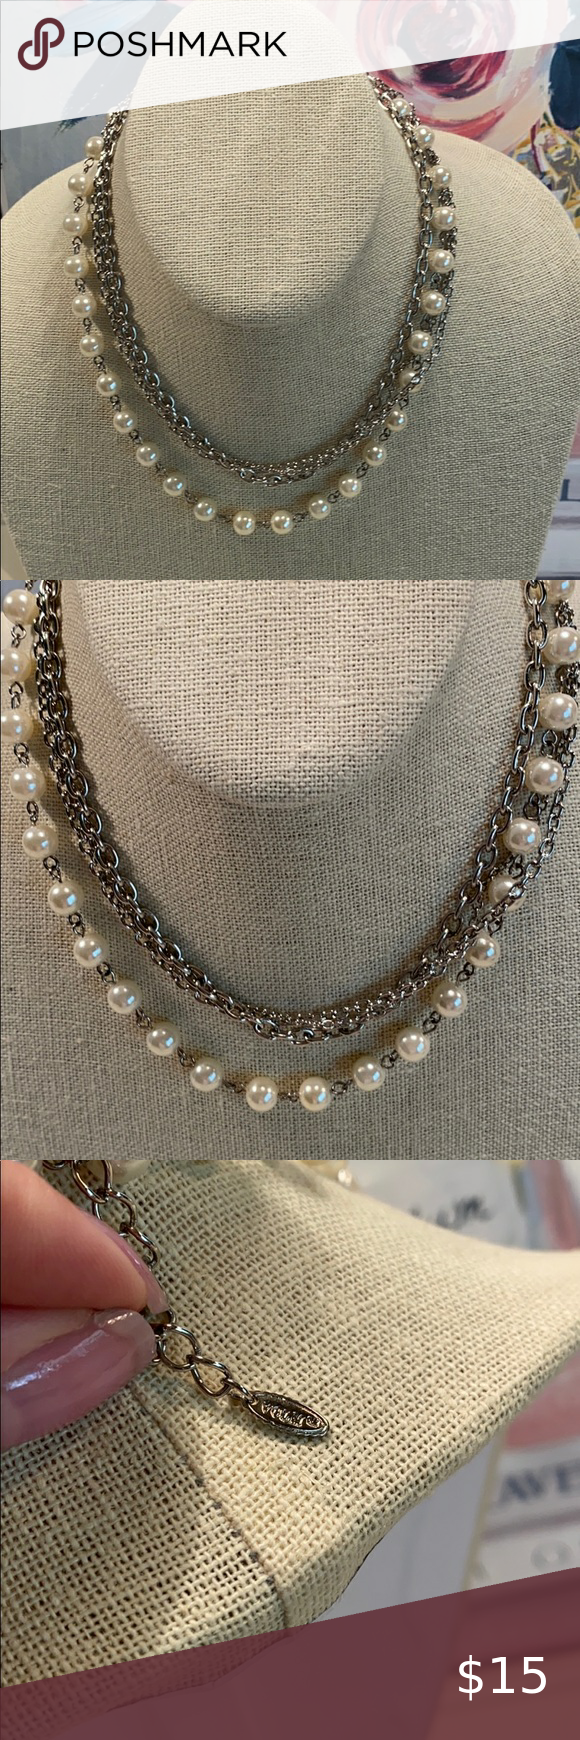 Vintage Volm Pearl Silver 14 Inch Choker Necklace In 2020 Chokers Multi Chain Necklace Silver Pearls